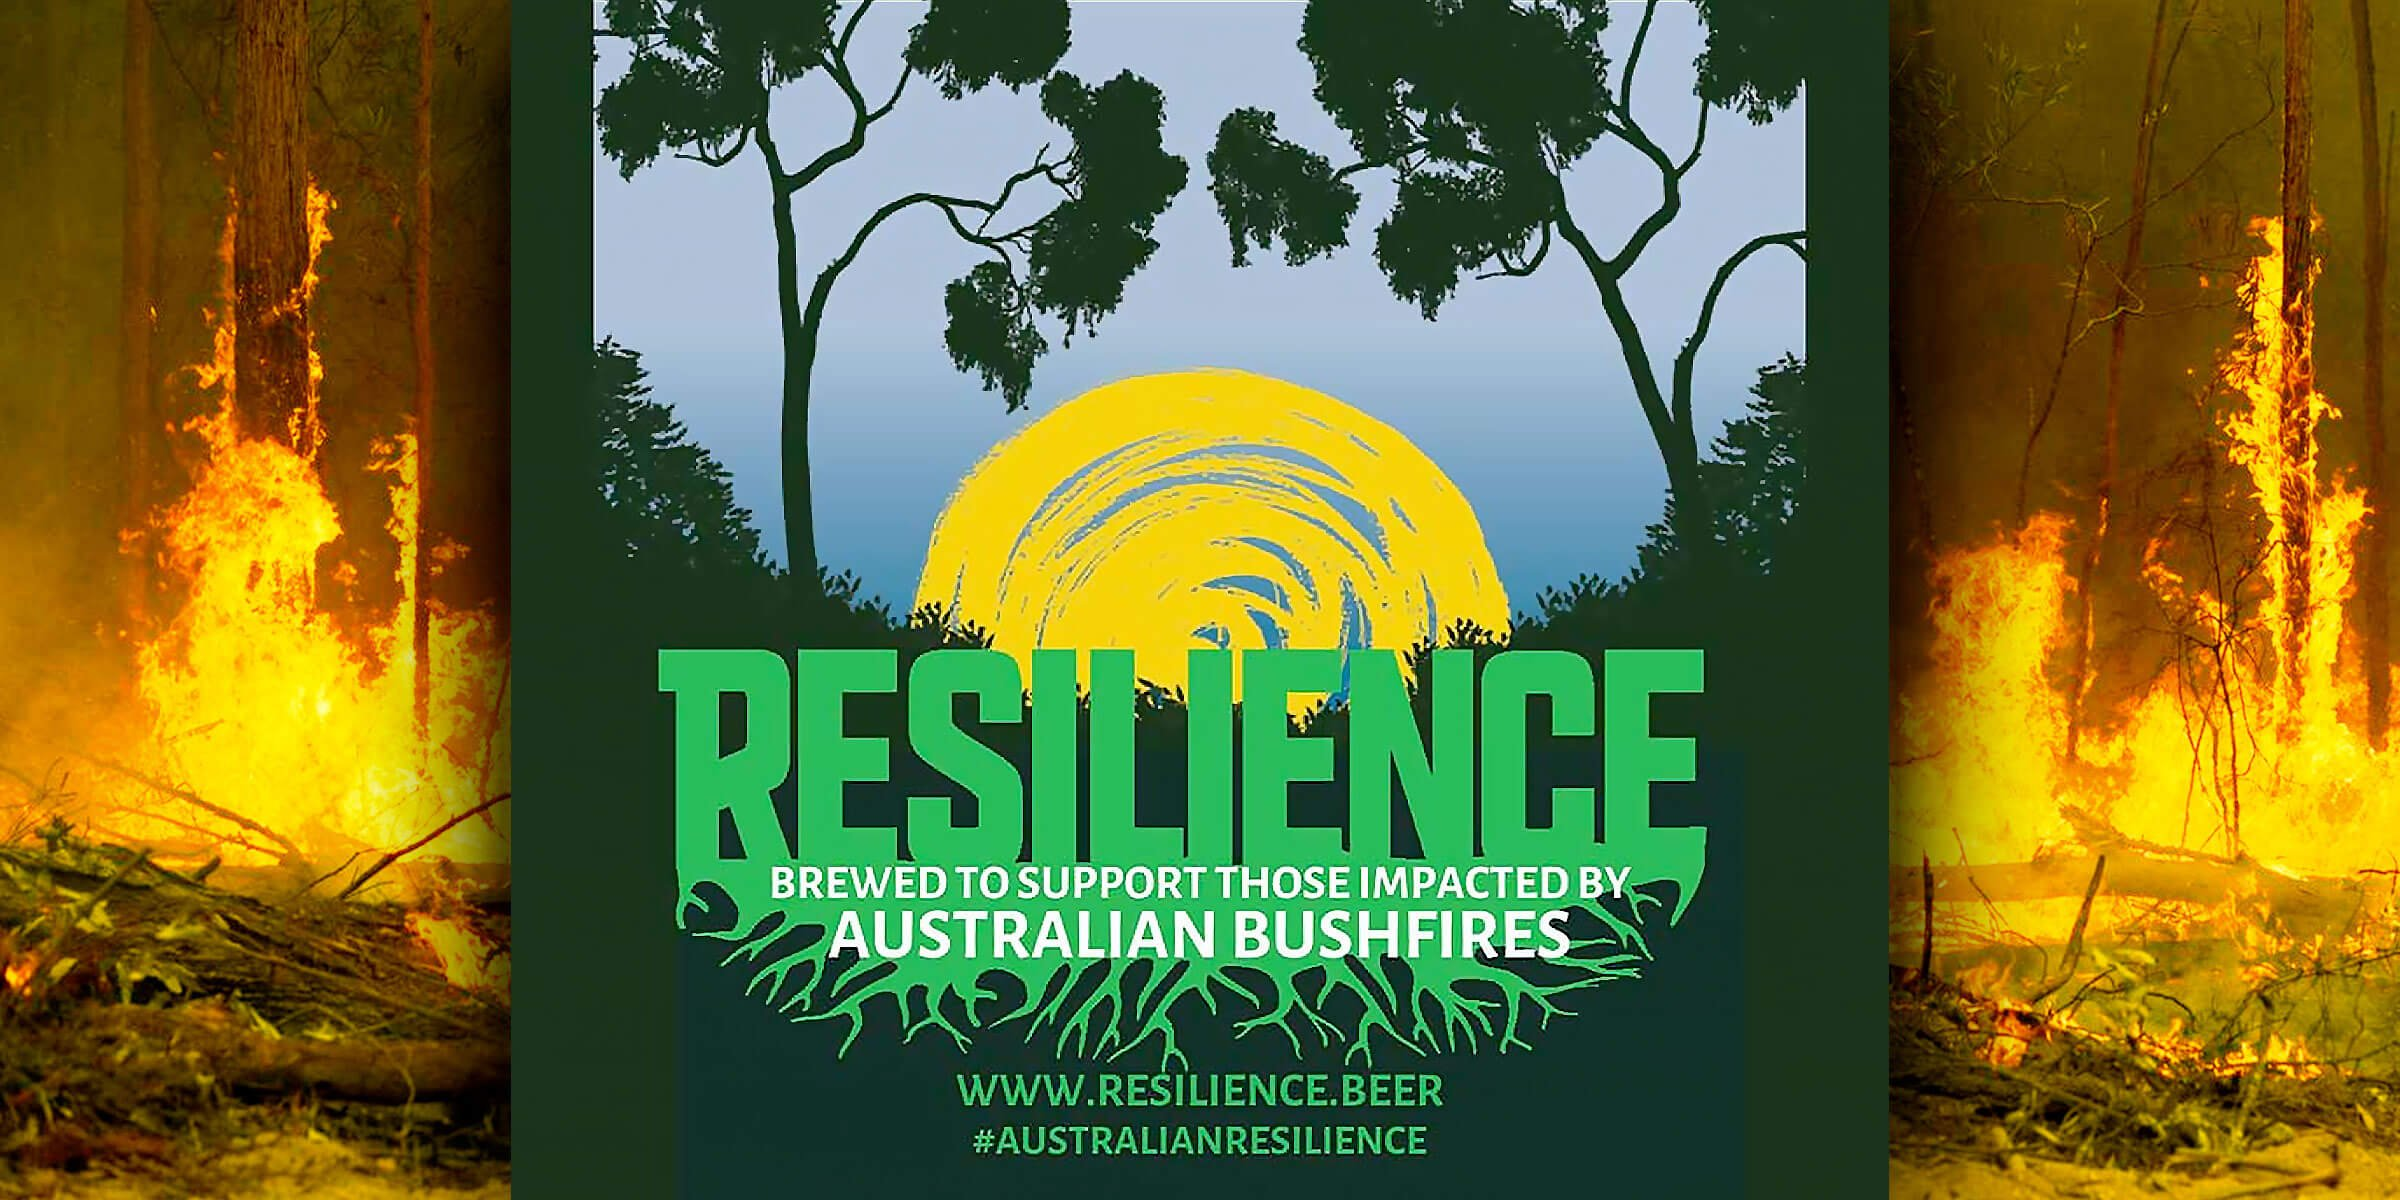 Sierra Nevada Brewing's Resilience IPA has inspired Australian brewers to create a similar movement, Resilience Beer, in response to the country's brush fires.